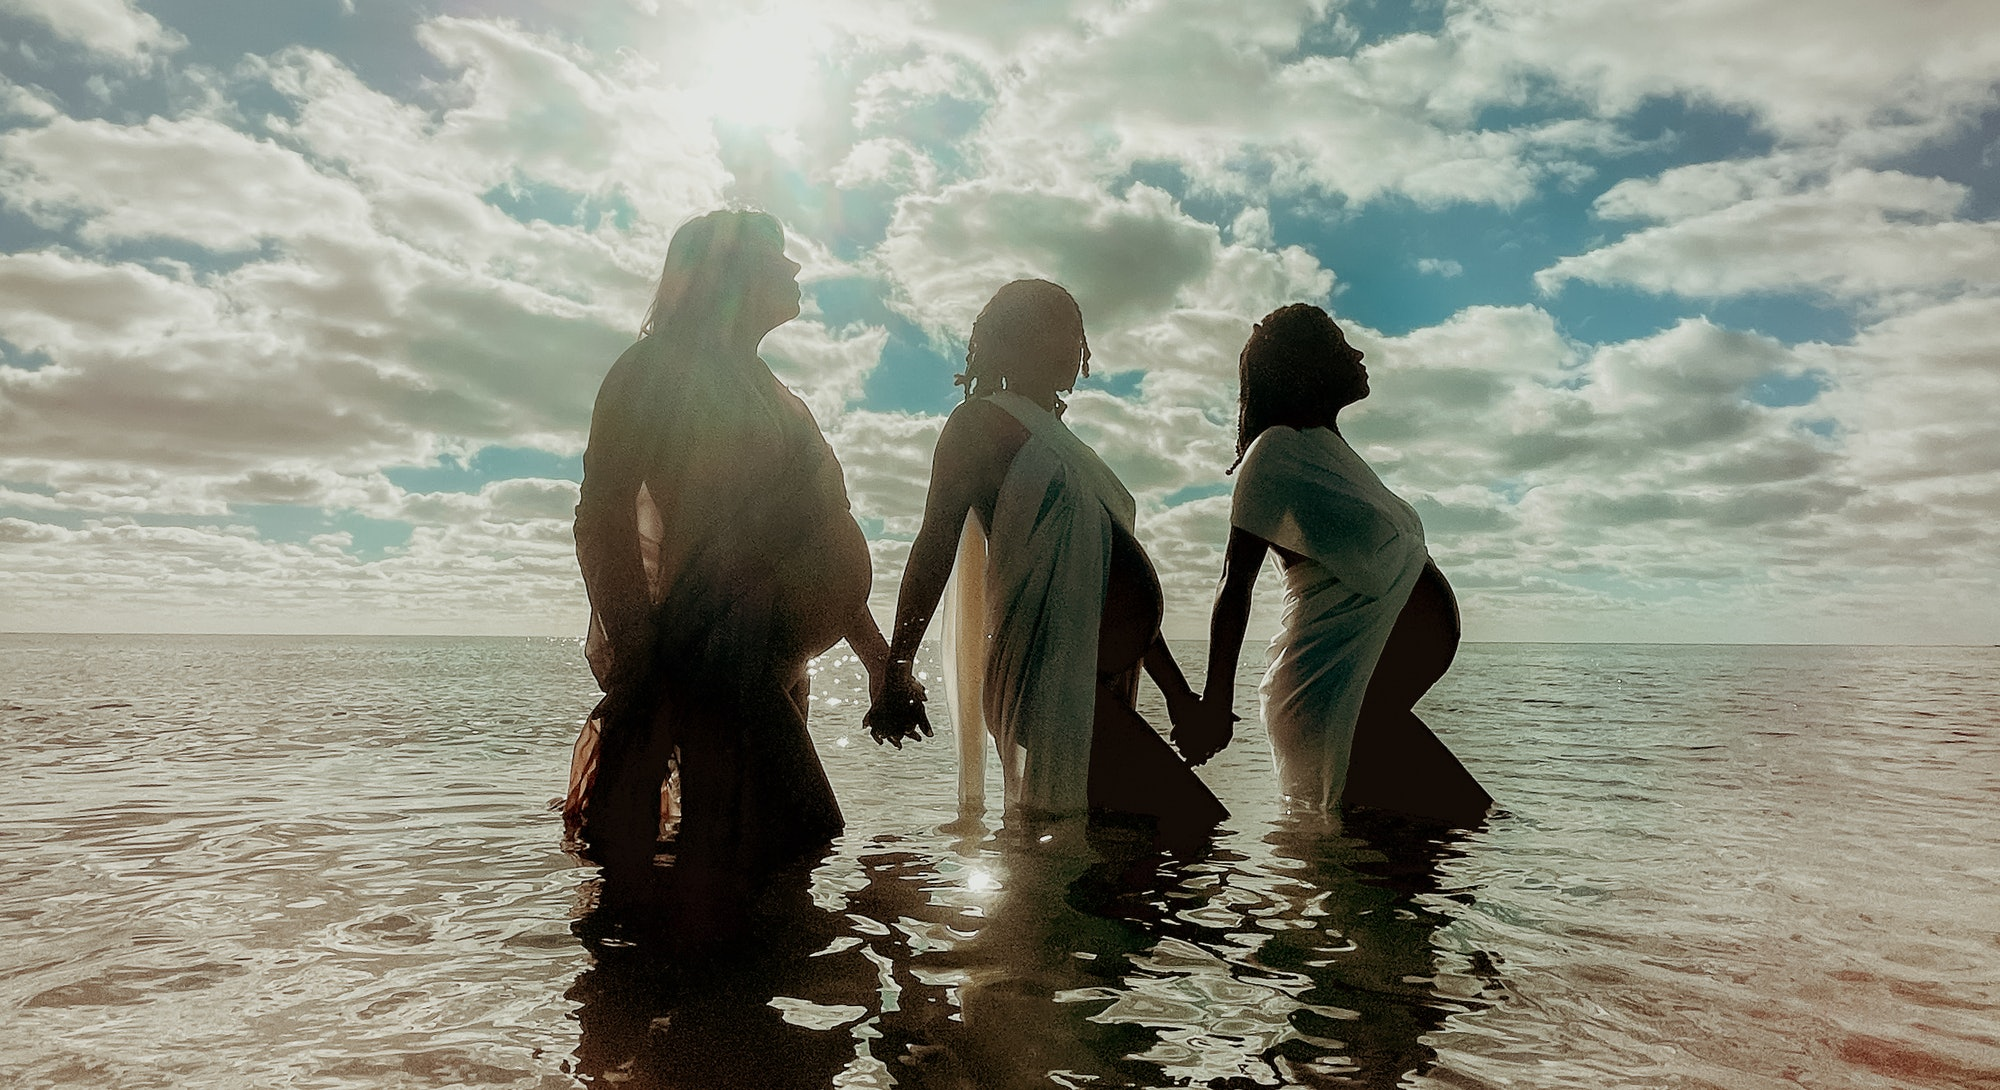 Three pregnant women in the water. Apple partnered with female photographers for an International Women's Day photo series about gender.